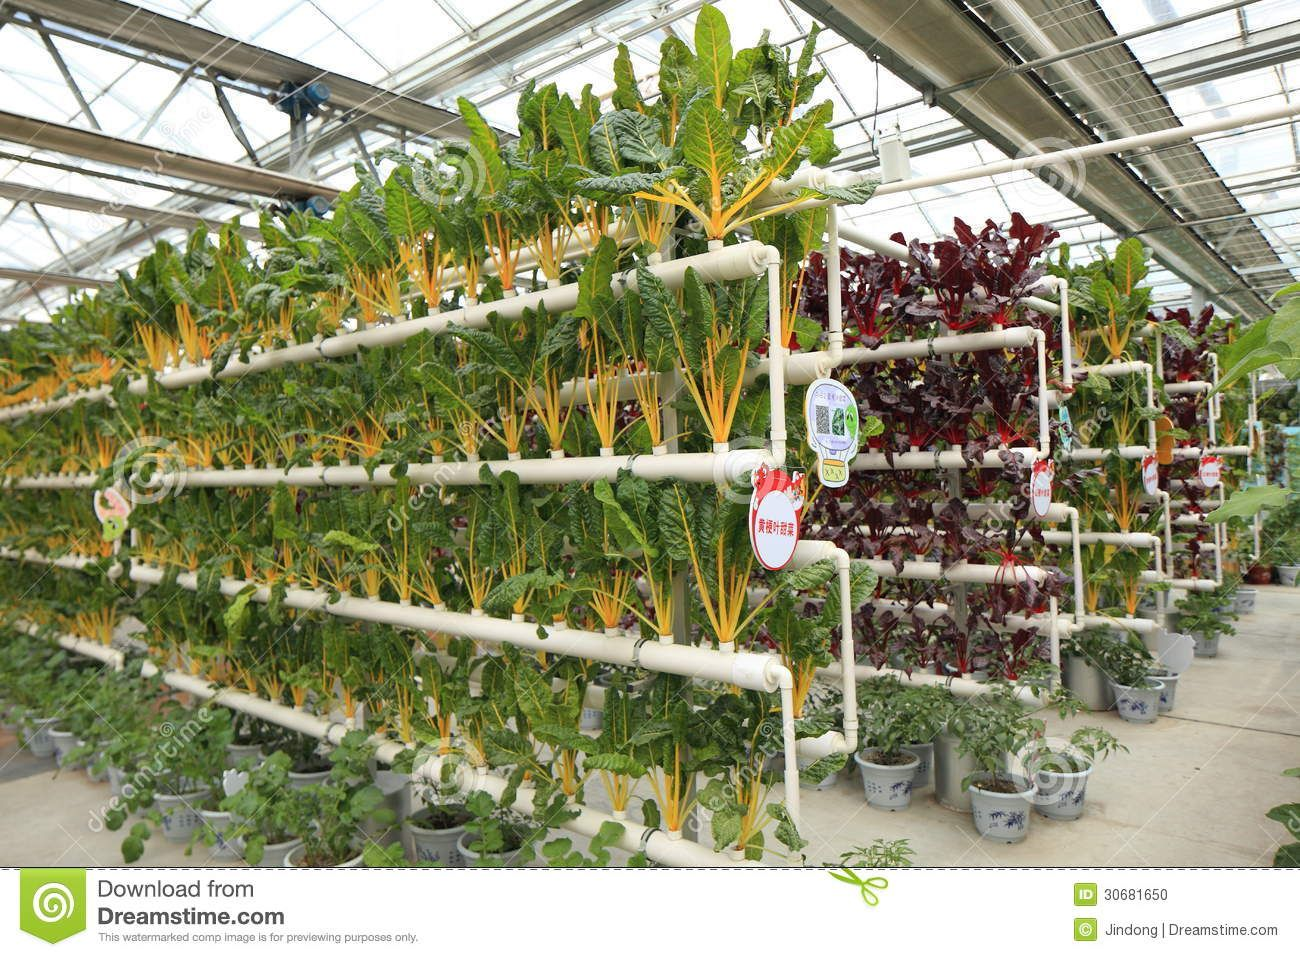 Soilless Cultivation Vegetables Download From Over 29